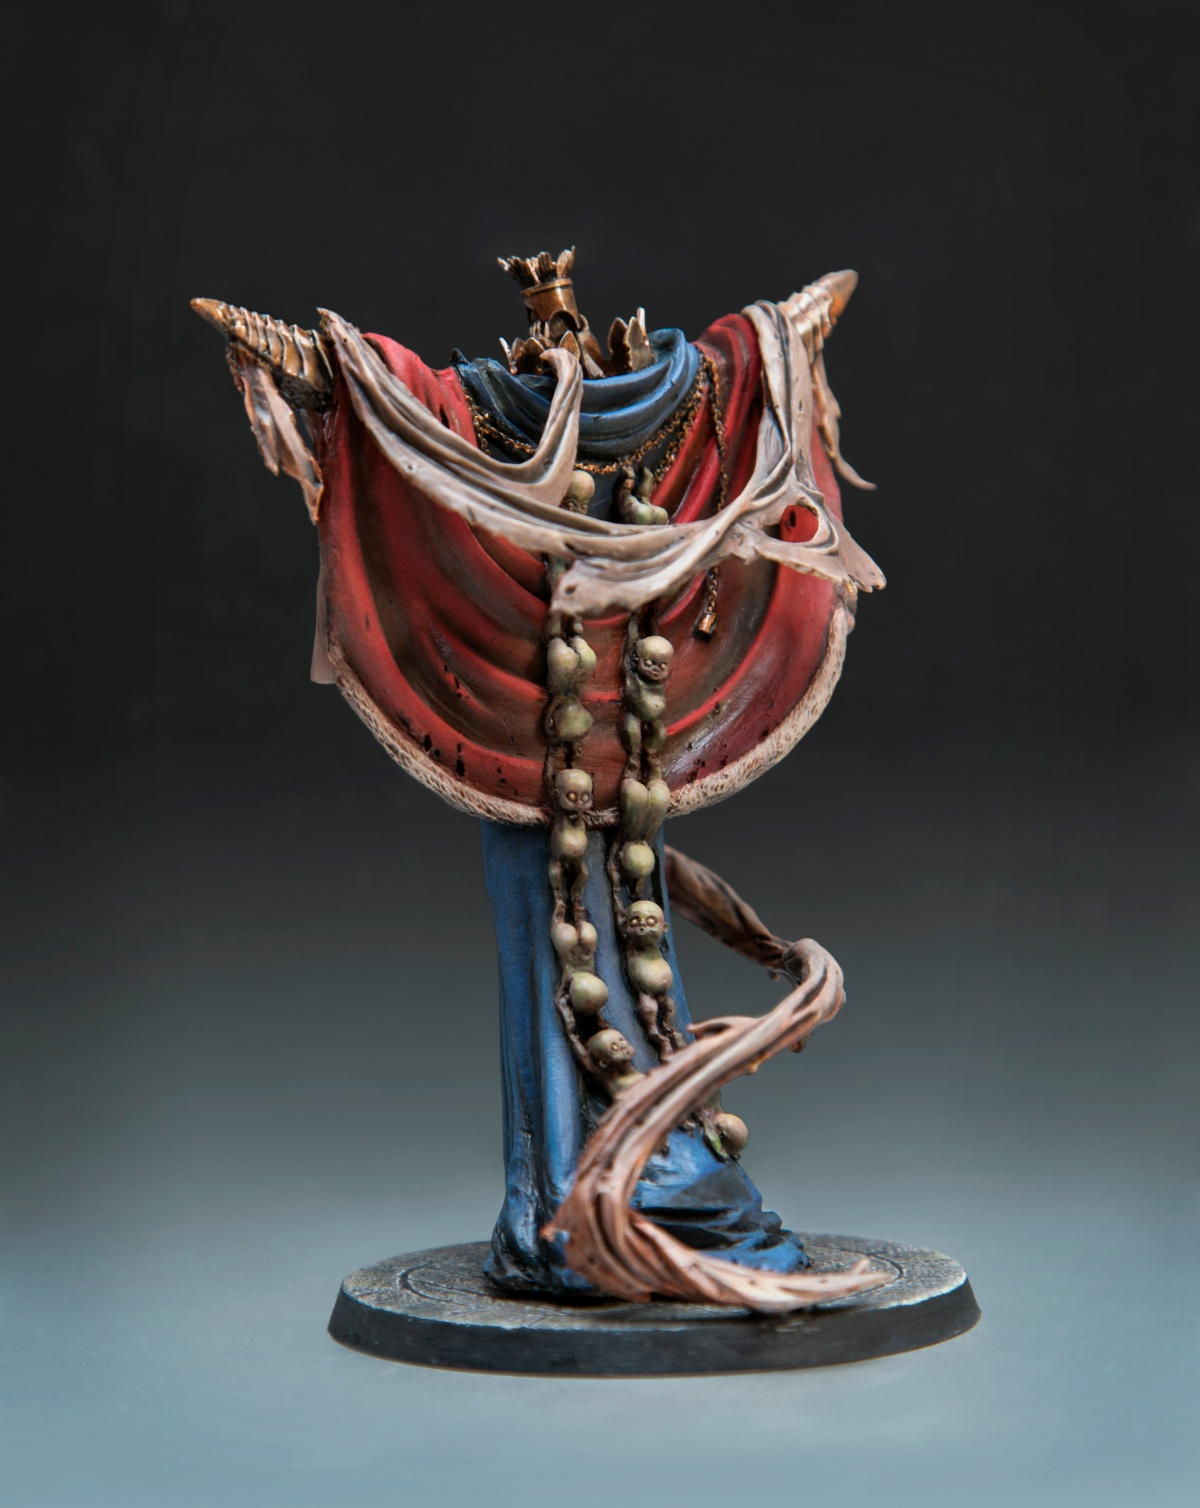 The King Kingdom Death By Quot Lyla Mev Quot Lexie B 183 Putty Amp Paint